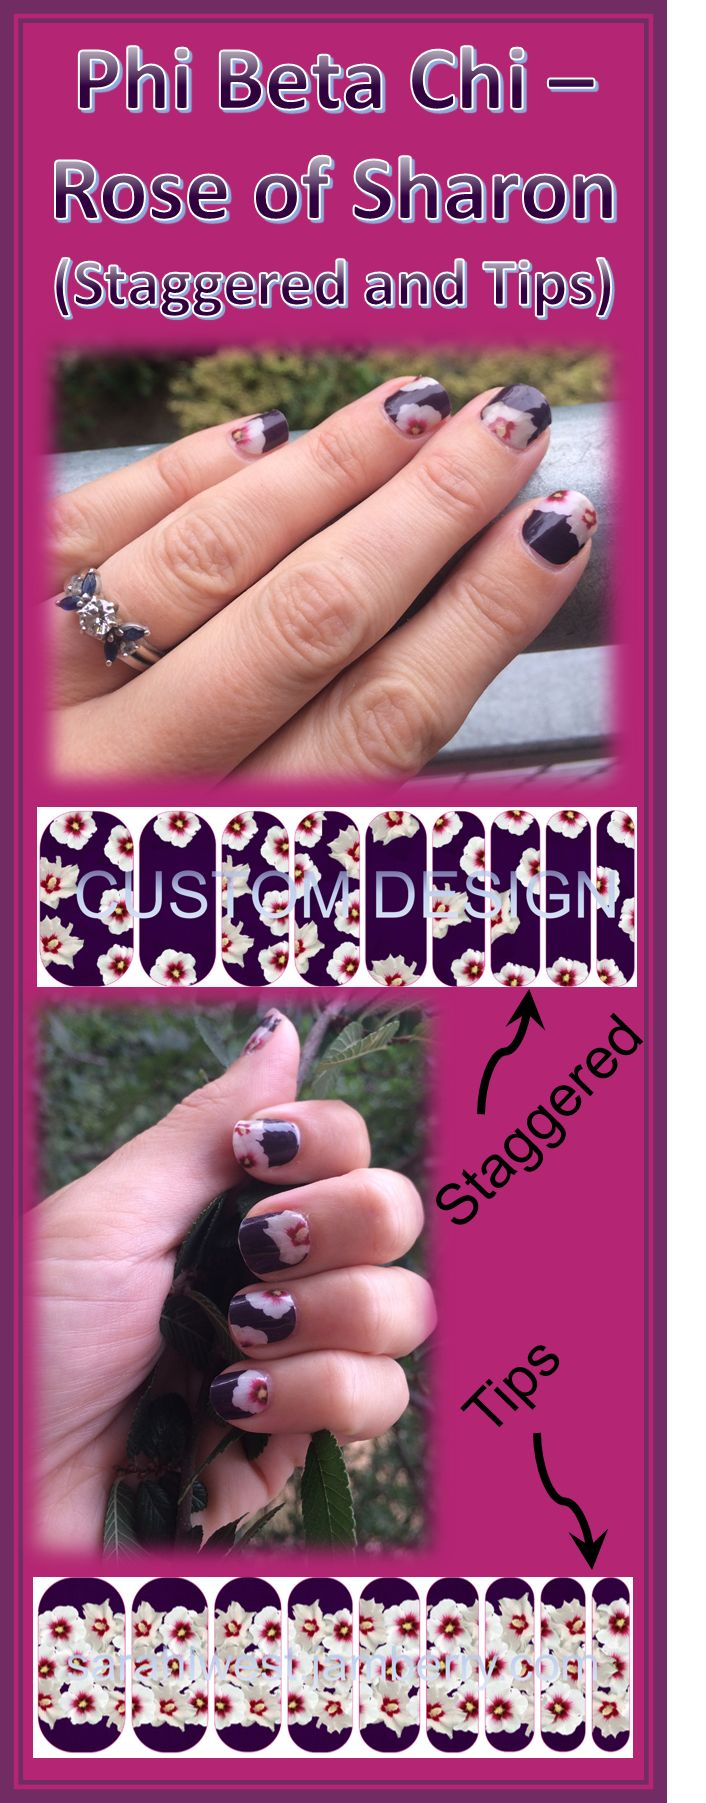 """"""" Phi Beta Chi - Rose of Sharon"""" Jamberry custom nail wraps. A deep purple base with white Rose of Sharon flowers. You can choose from staggered flowers or flowers on the tips only."""